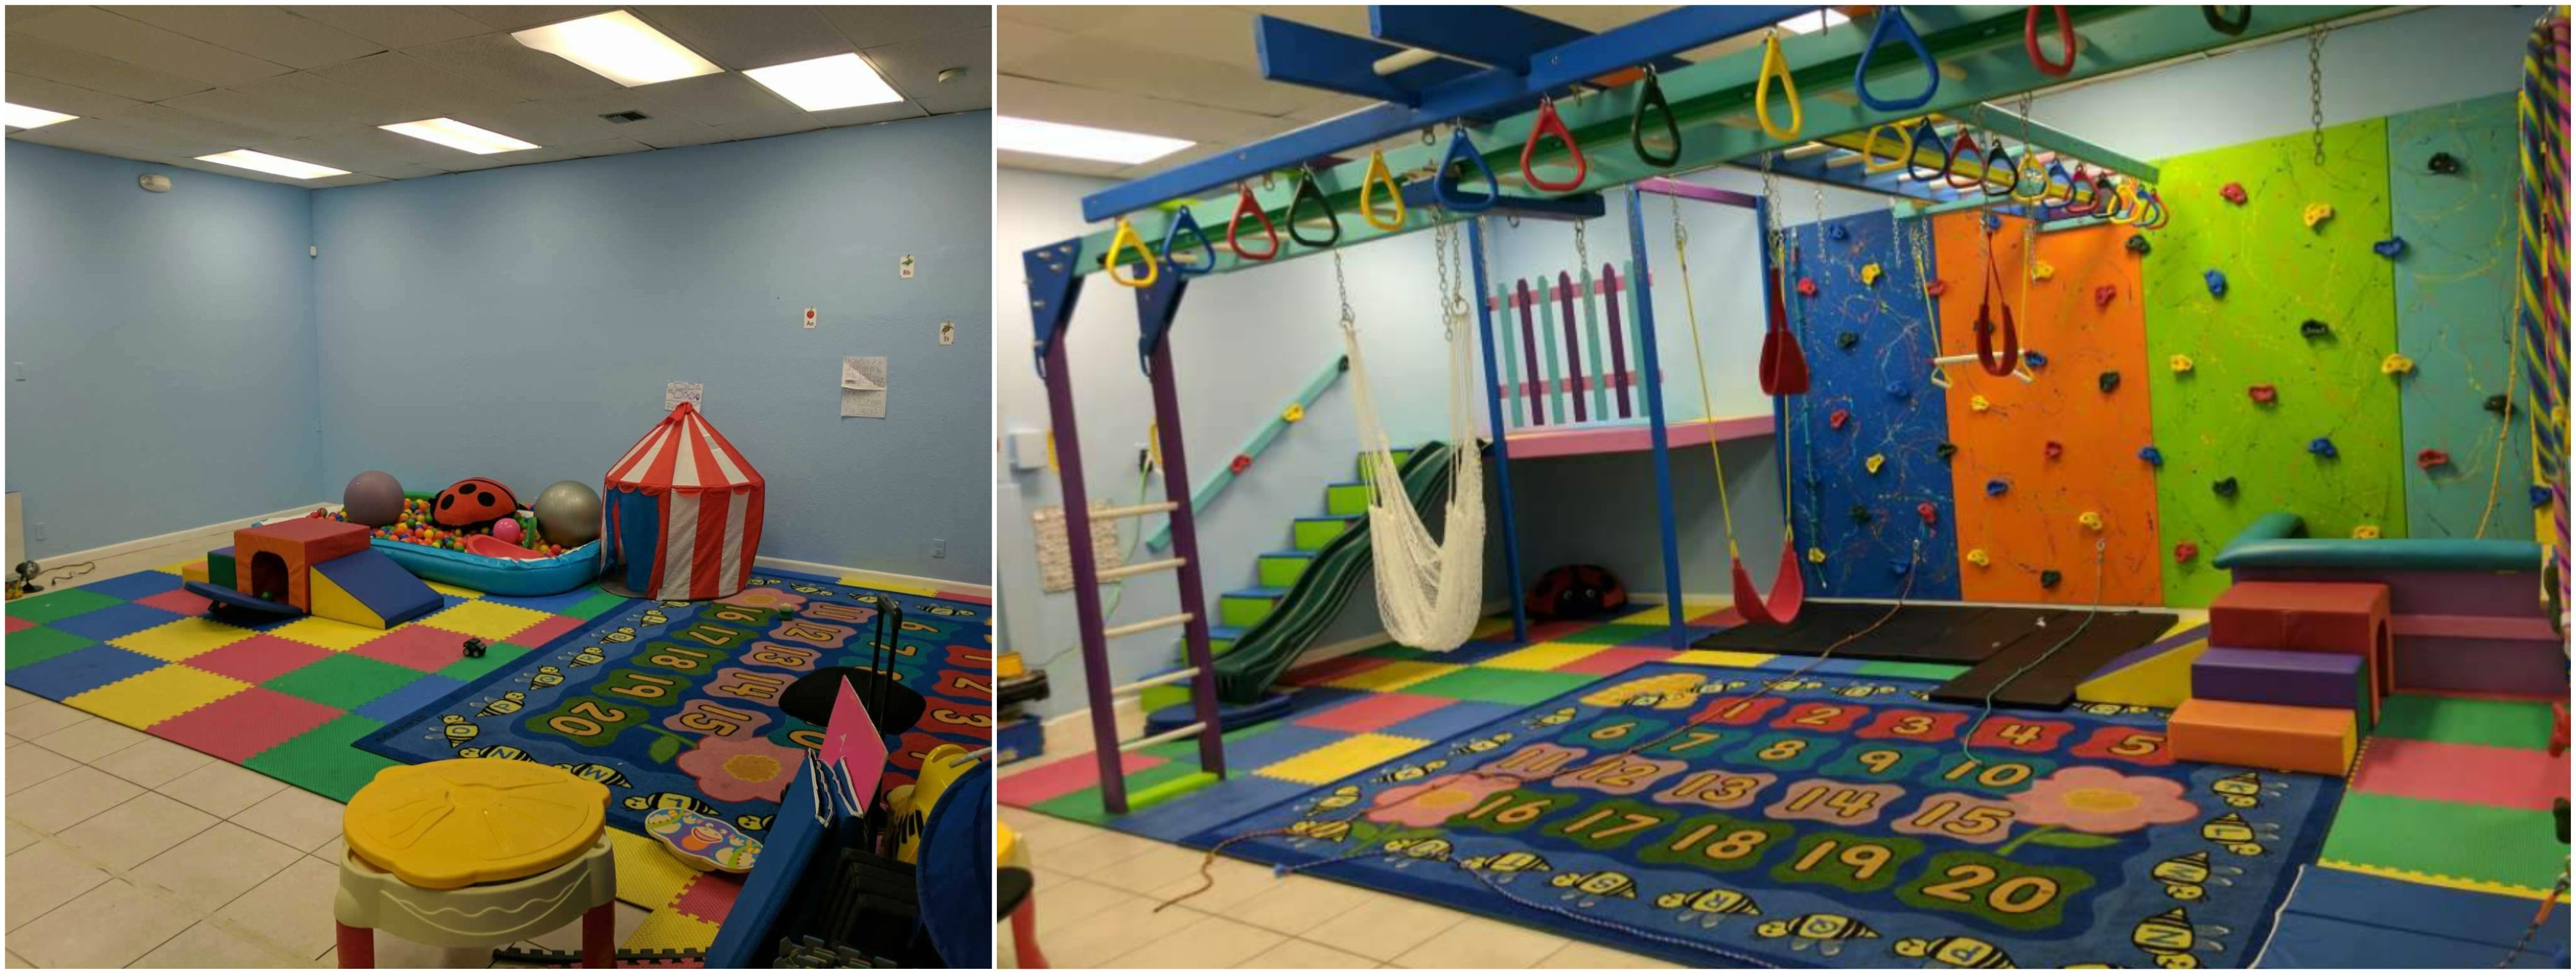 Before A Fun Factory Sensory Gym And After One Of Our Favorite Transformation Photos